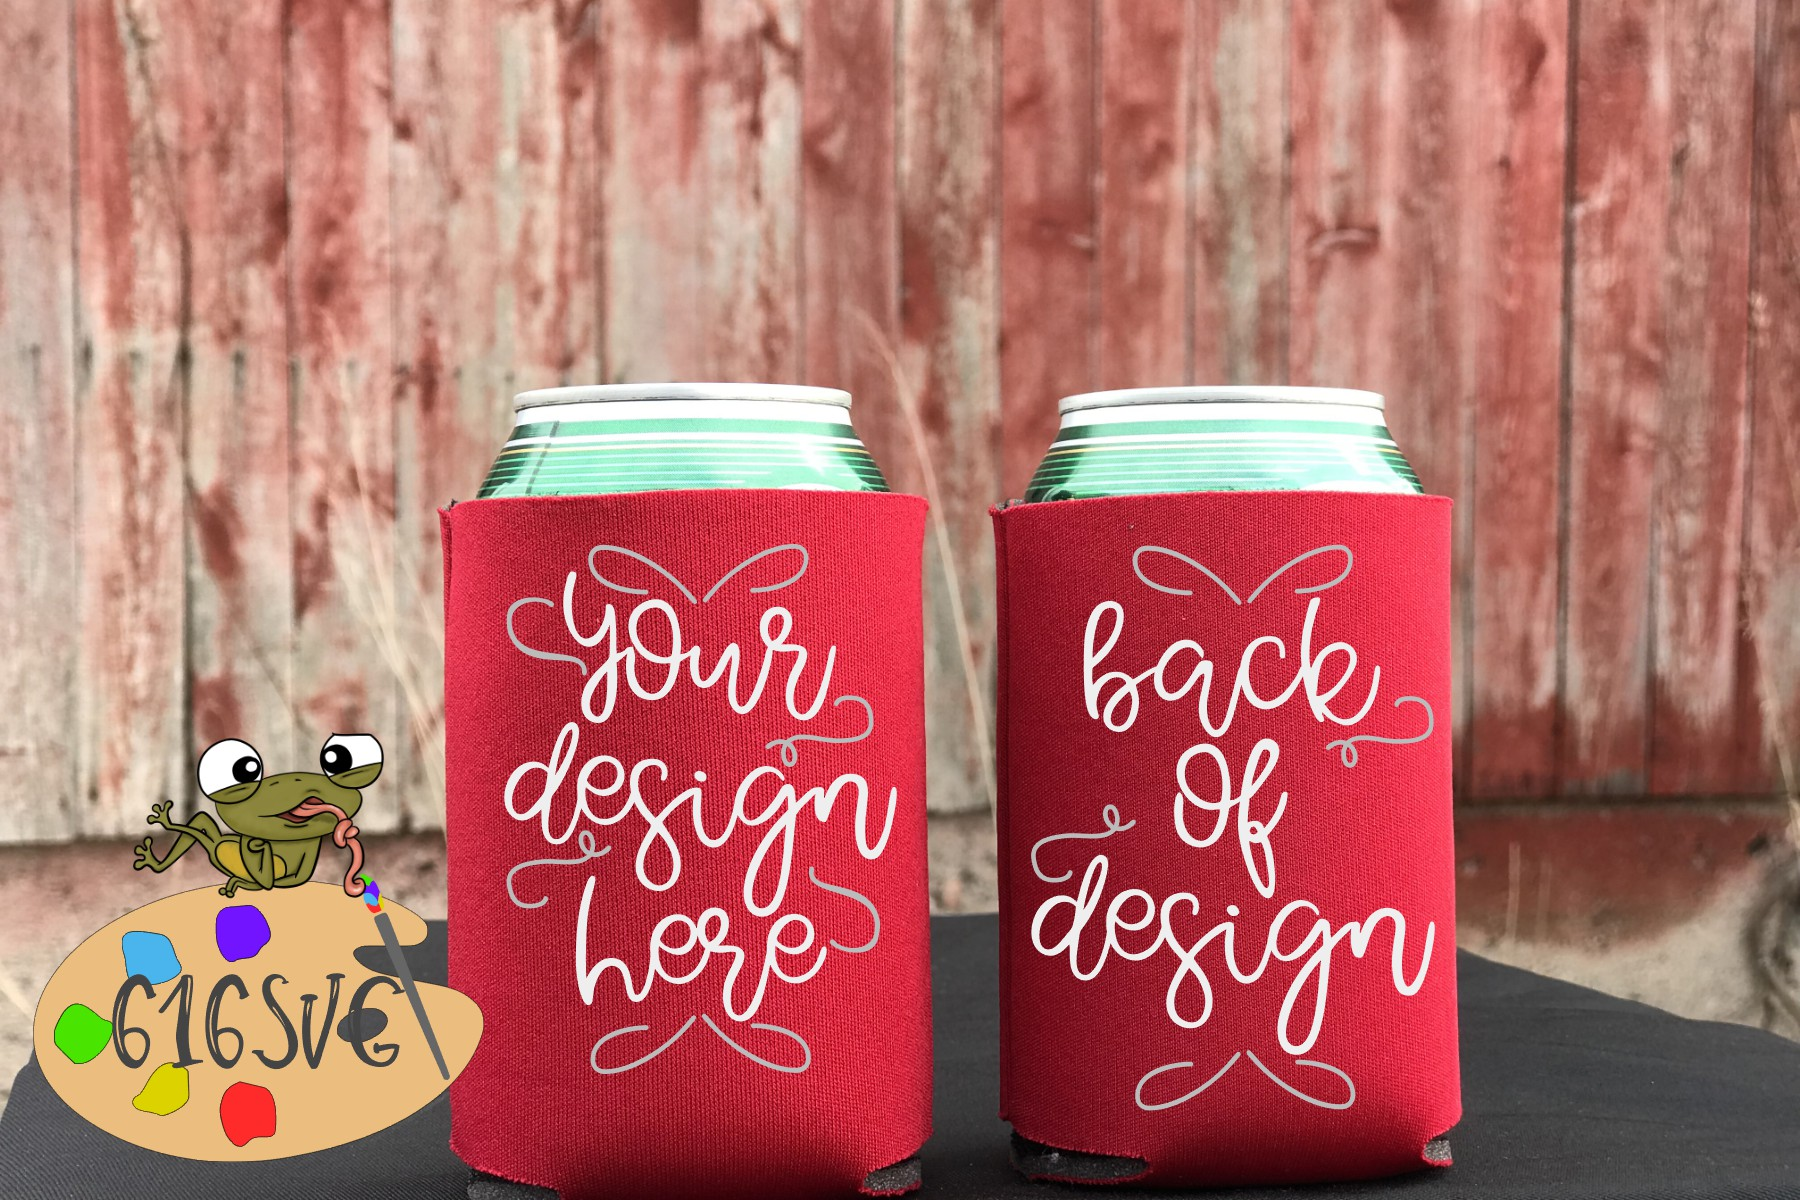 Download Free Red Can Cooler Mockup Graphic By 616svg Creative Fabrica for Cricut Explore, Silhouette and other cutting machines.